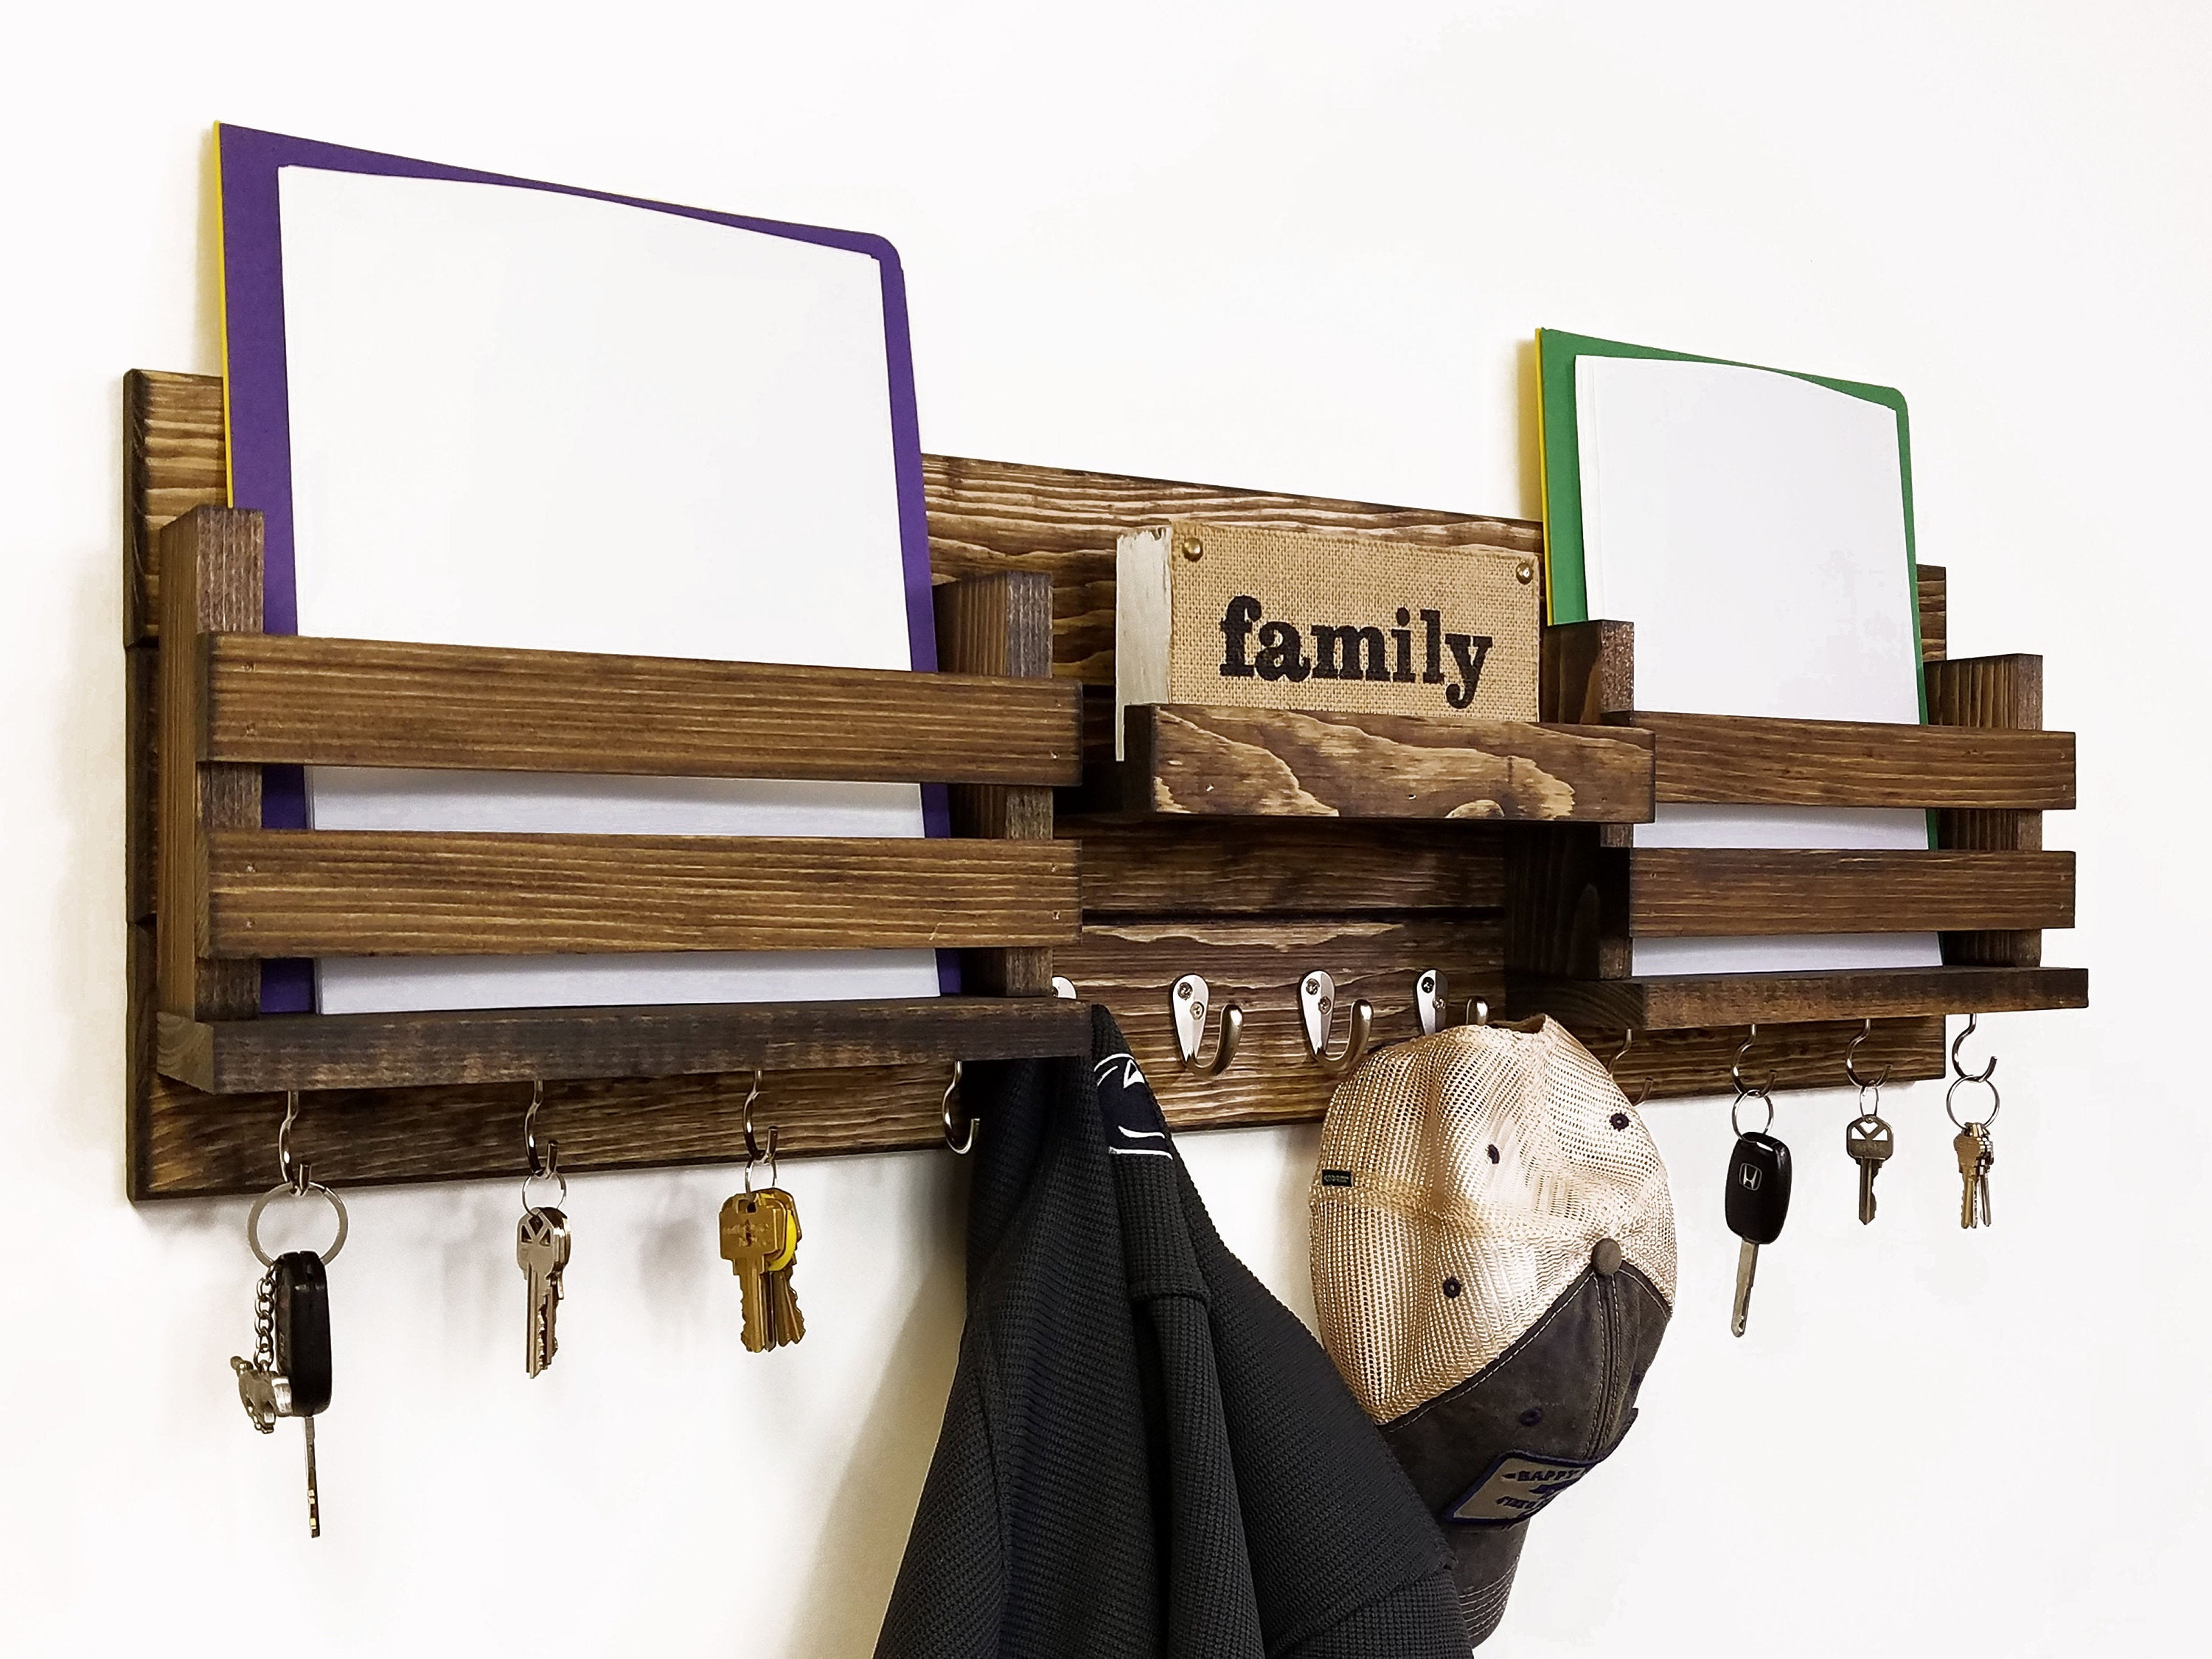 Newtown Farmhouse Large Family Double Bin Wall Mounted Organizer, Entryway Wall Organizer, Coat Rack with Shelf, Wall Mount Coat Rack - Renewed Decor & Storage